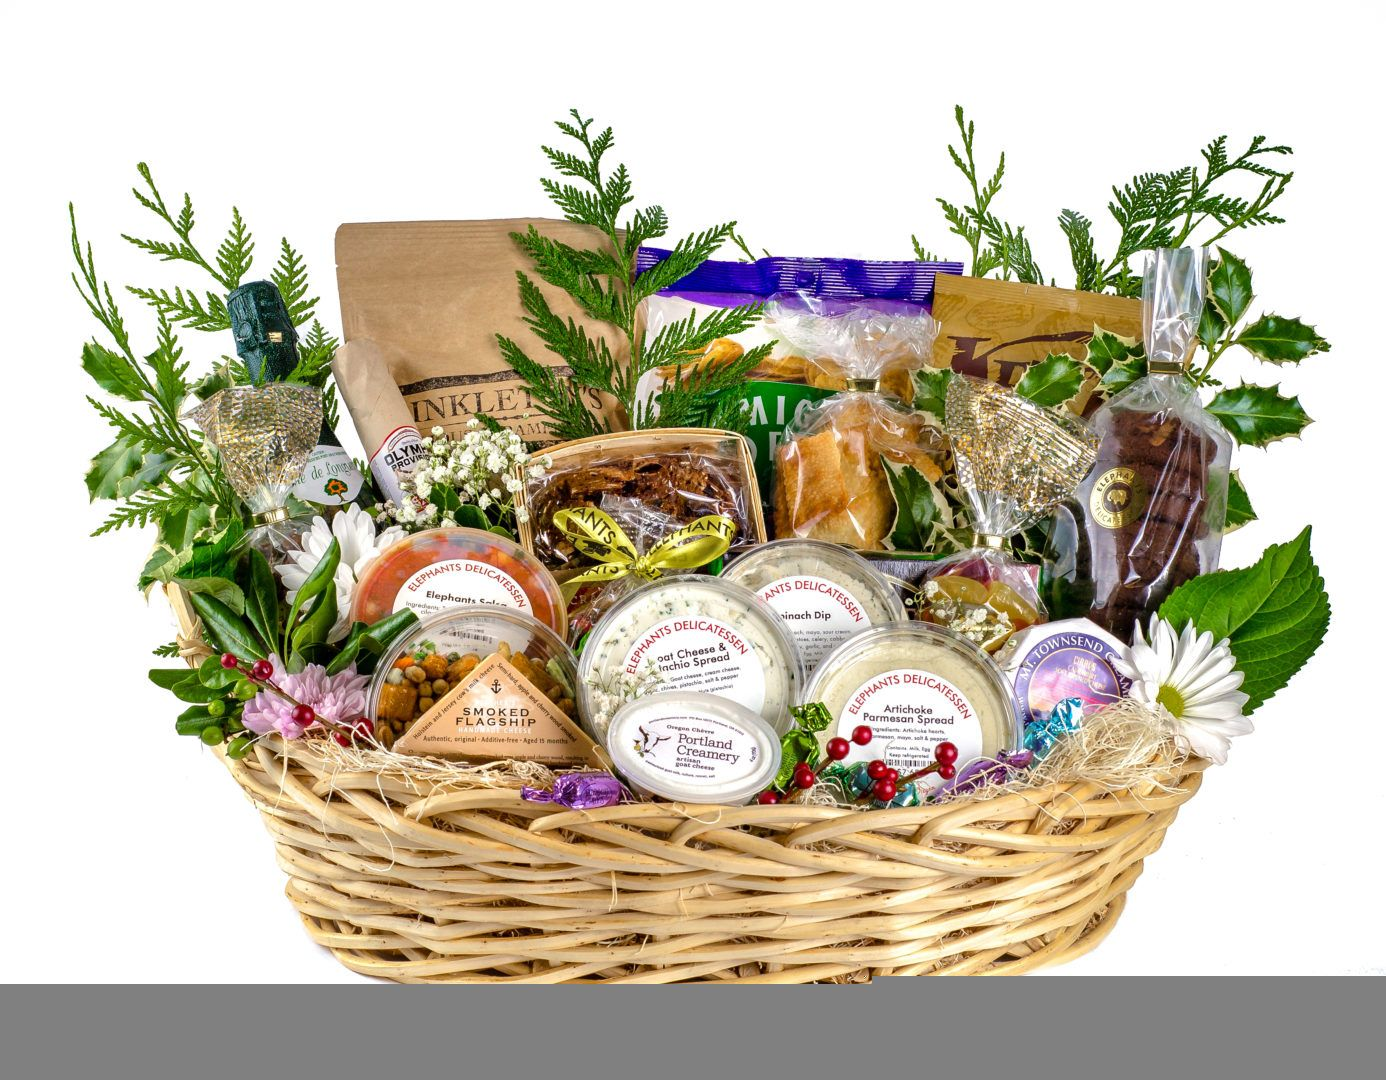 Gourmet Gift Baskets Elephants Delicatessen Perfect Gift Opinions For Special Days Valentines Day Di In 2020 Business Gifts Gourmet Gift Baskets Gifts For Fiance